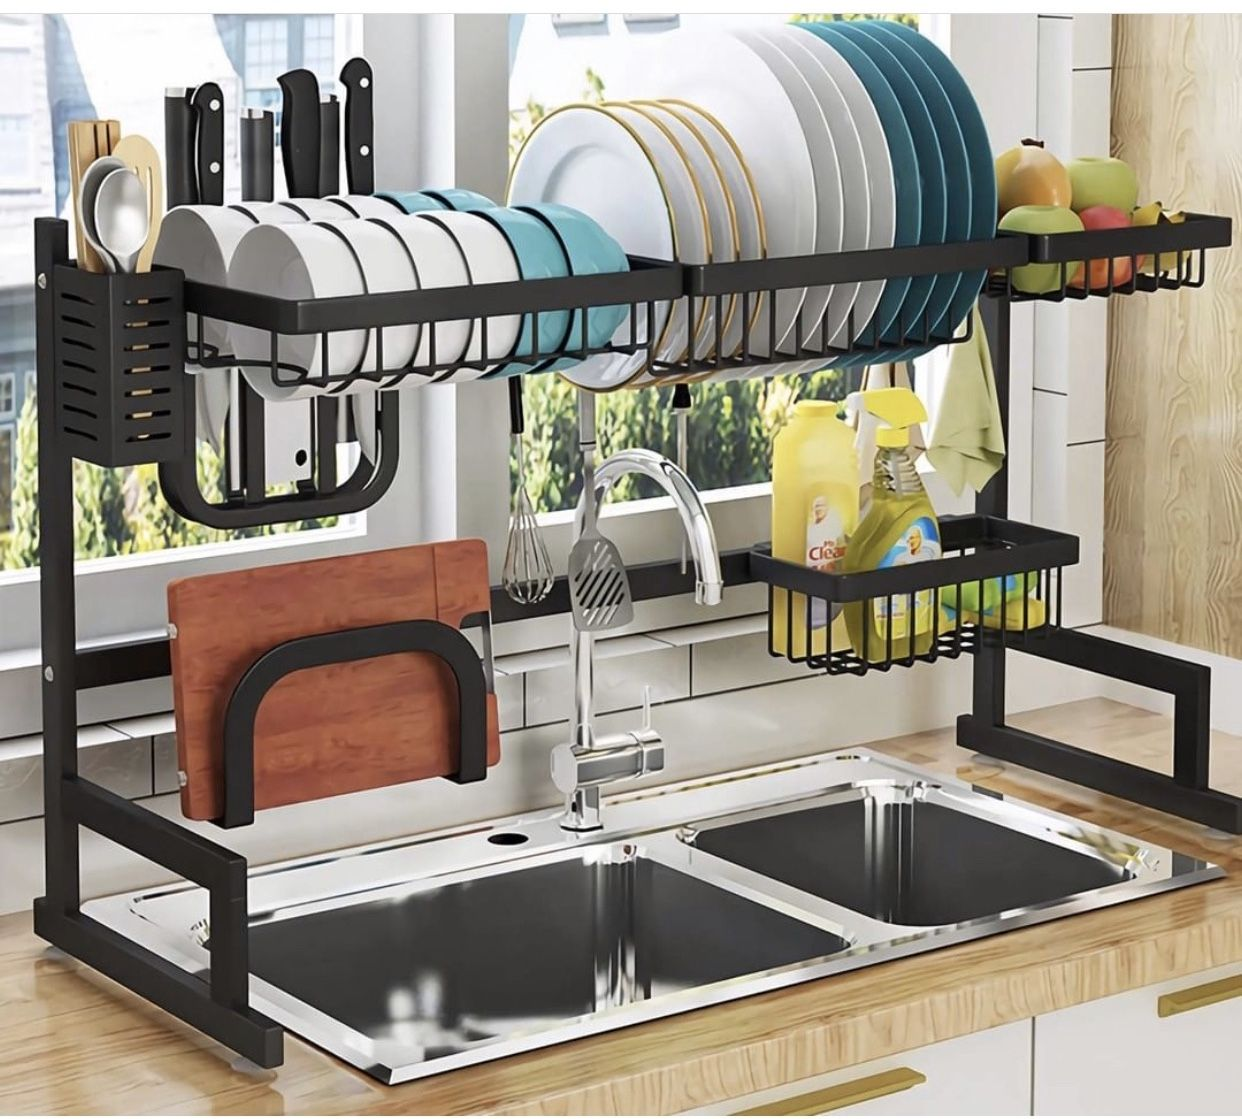 Pin By Nesha Daniels On Homes Stainless Steel Kitchen Shelves Dish Rack Drying Kitchen Counter Organization